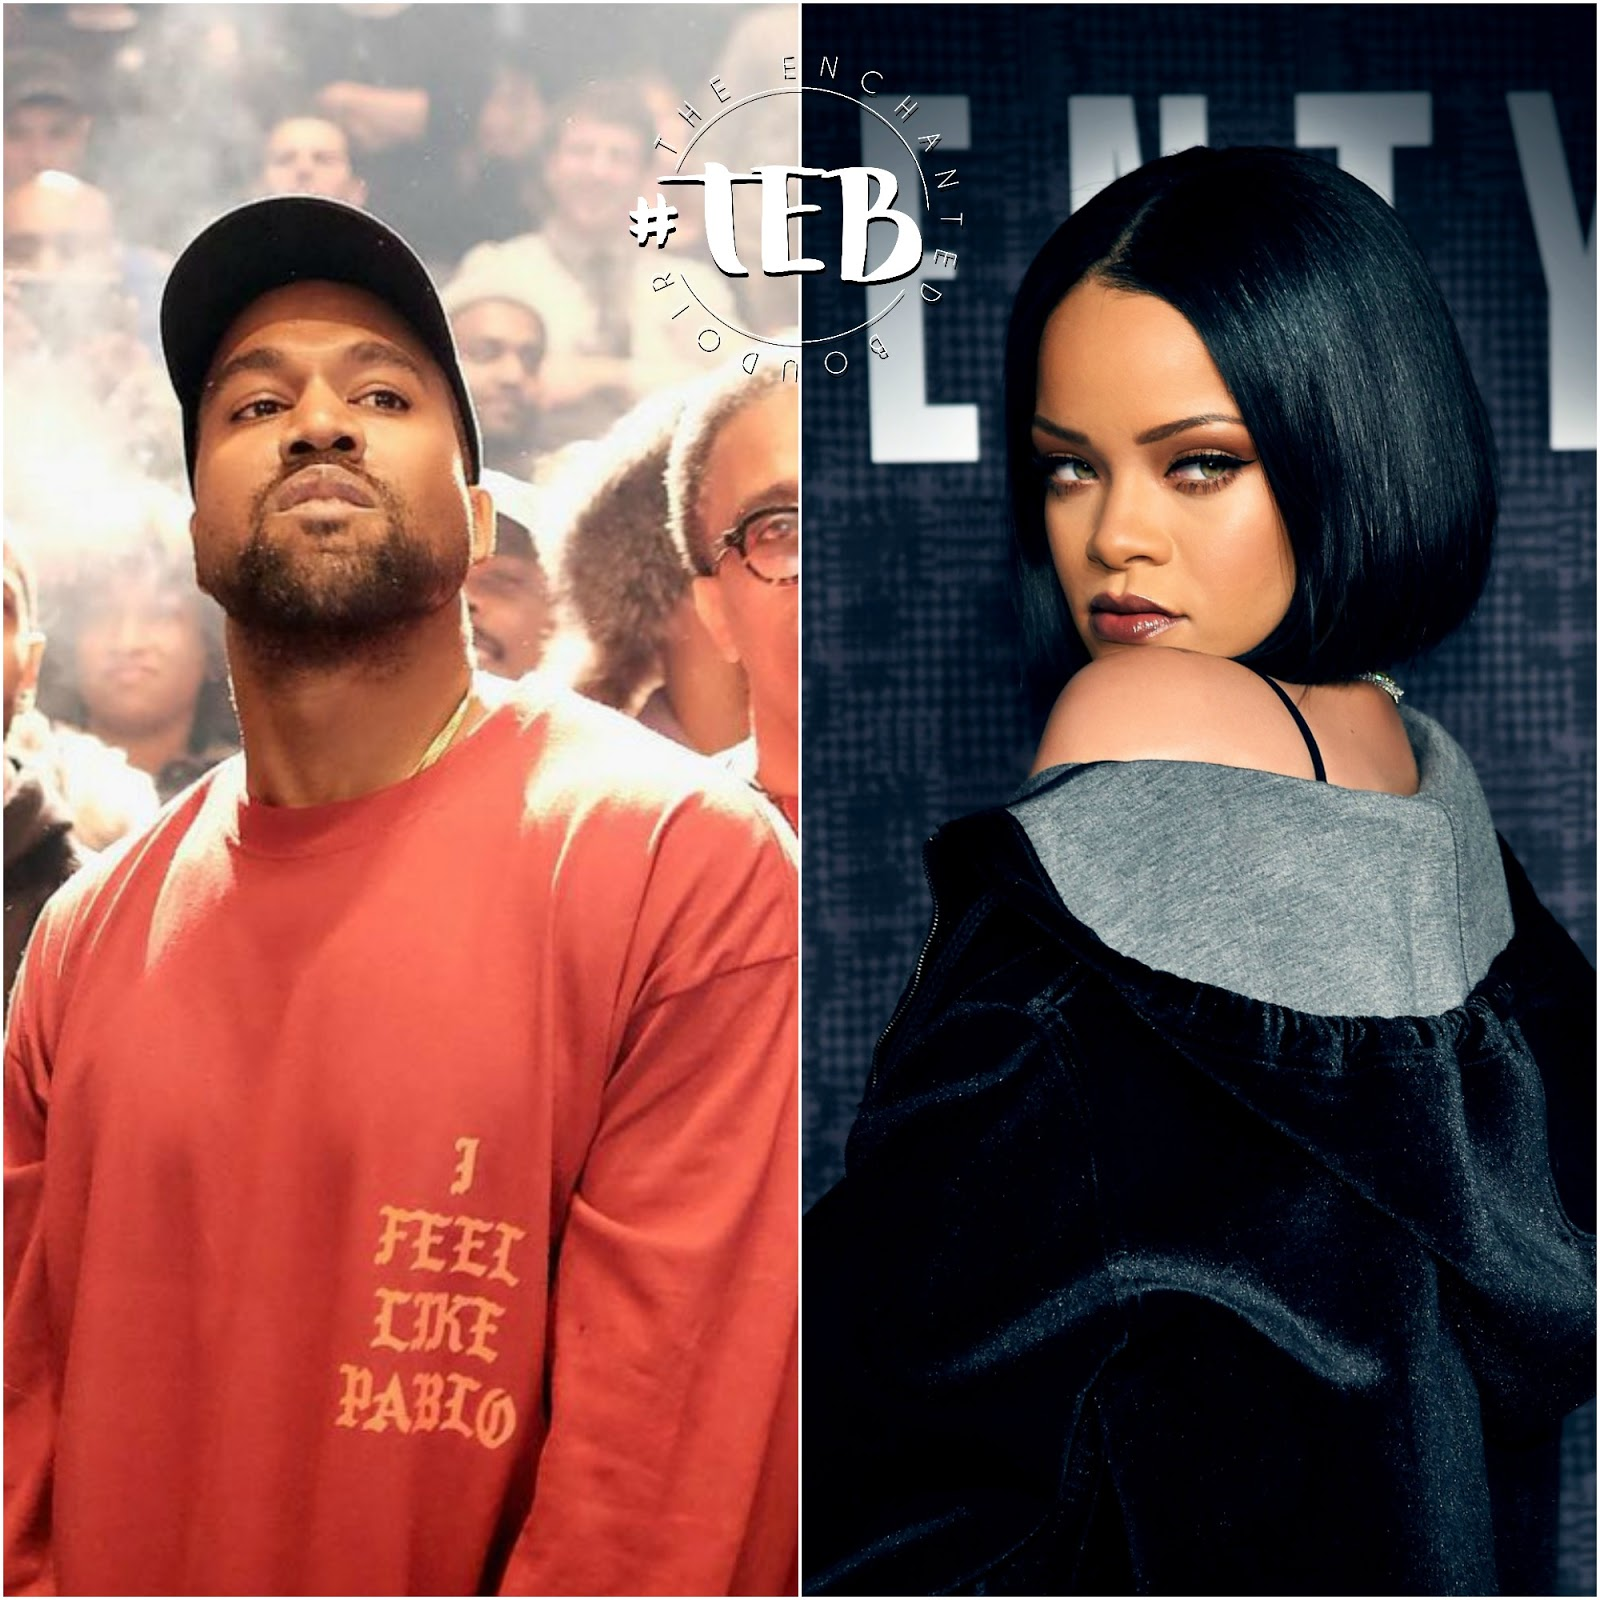 YEEZY SEASON 3 or FENTY X PUMA: is Rihanna a better designer than Kanye?